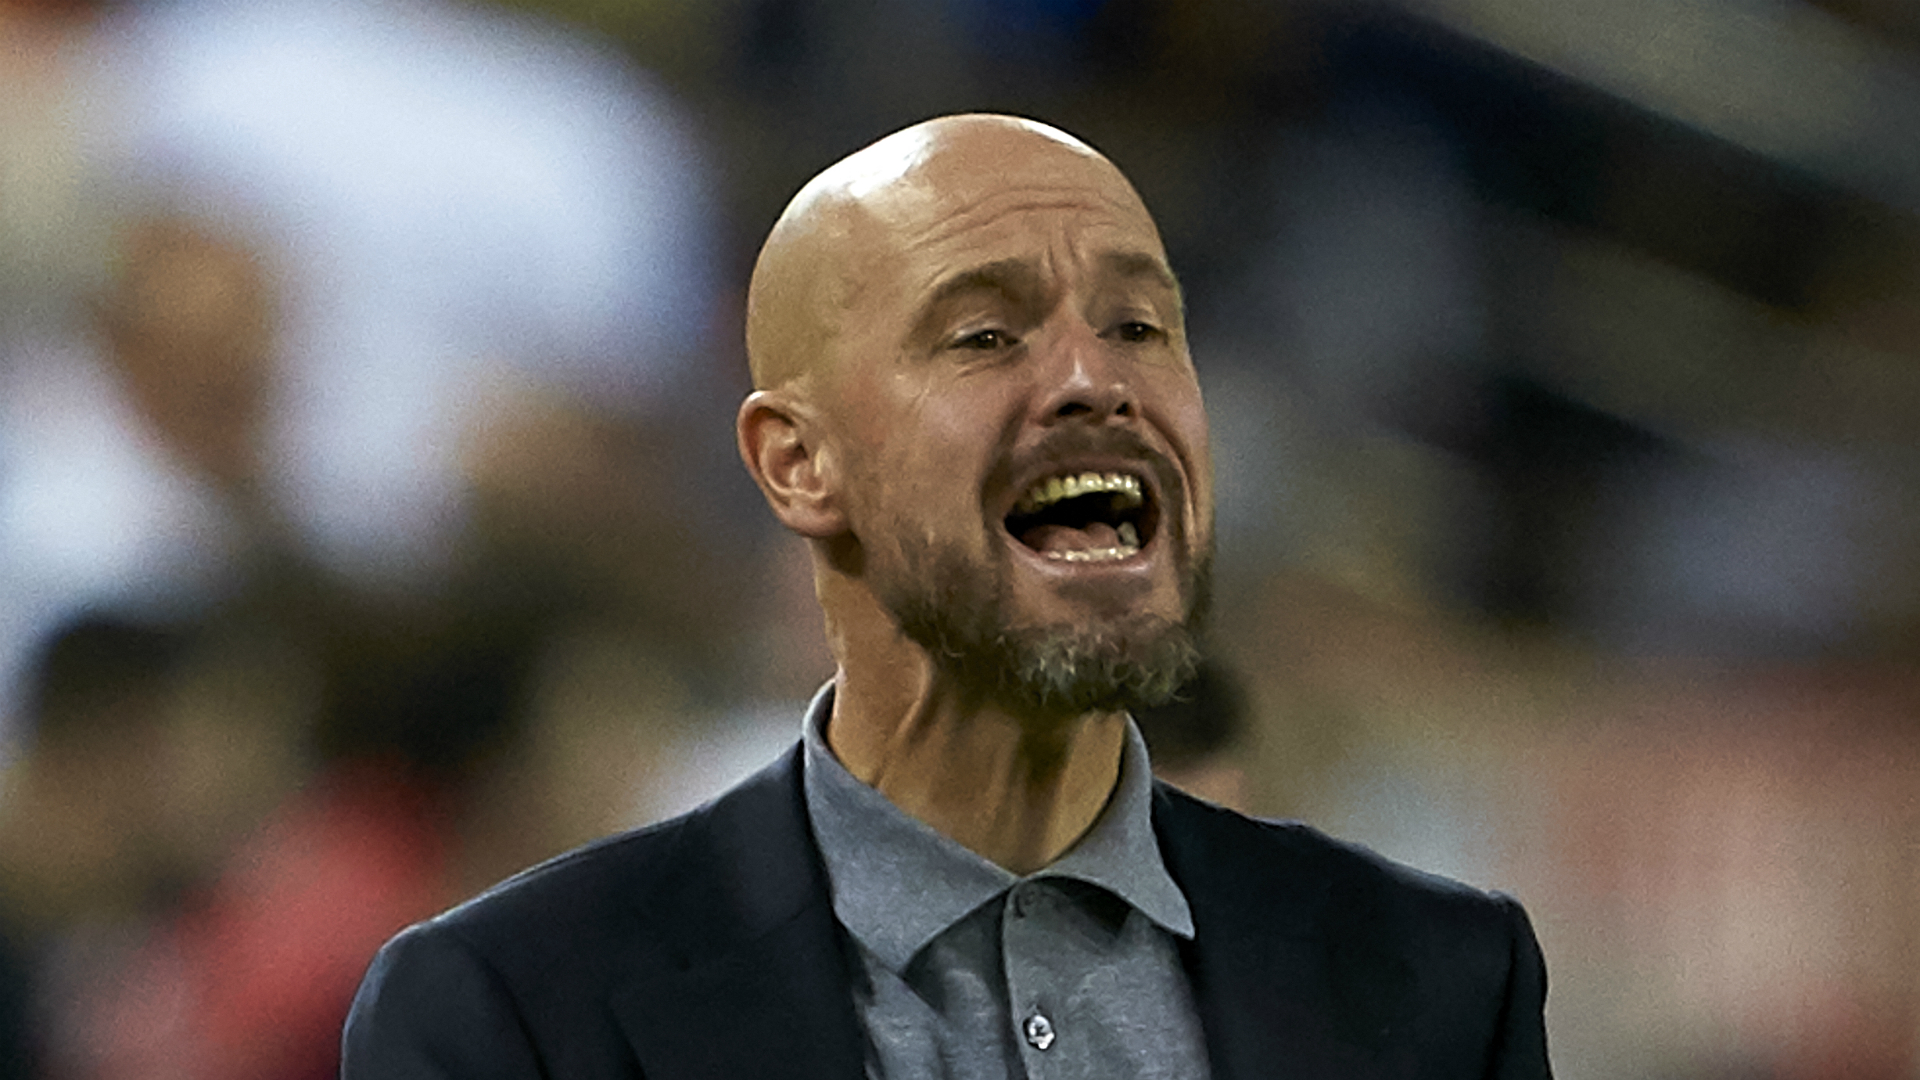 Ten Hag will not be leaving Ajax next year, says Overmars